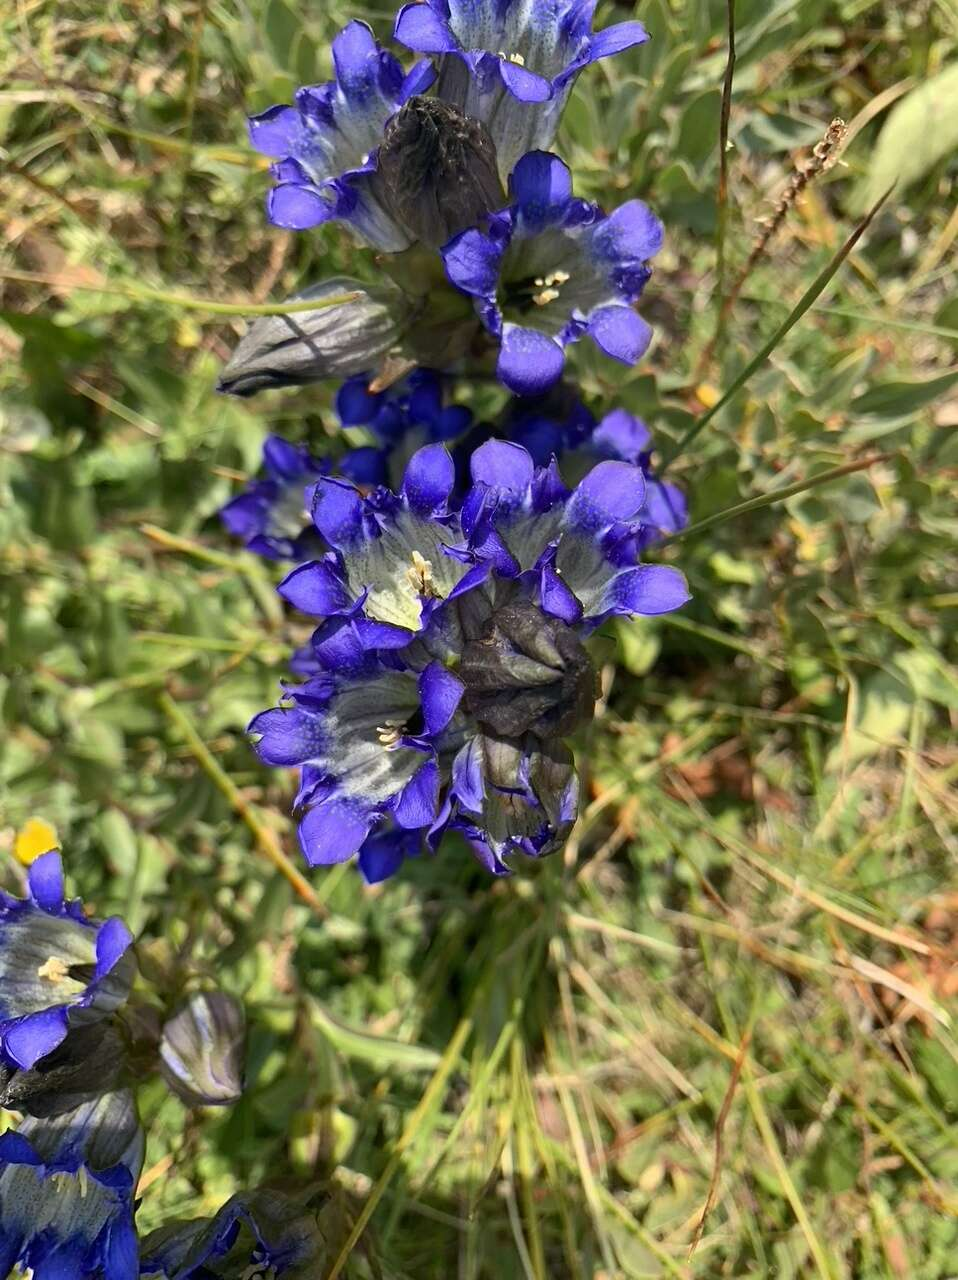 Pictured is a Bottle Gentian, one of the many gentian varieties found in Summit County.   Photo by Karn Stiegelmeier